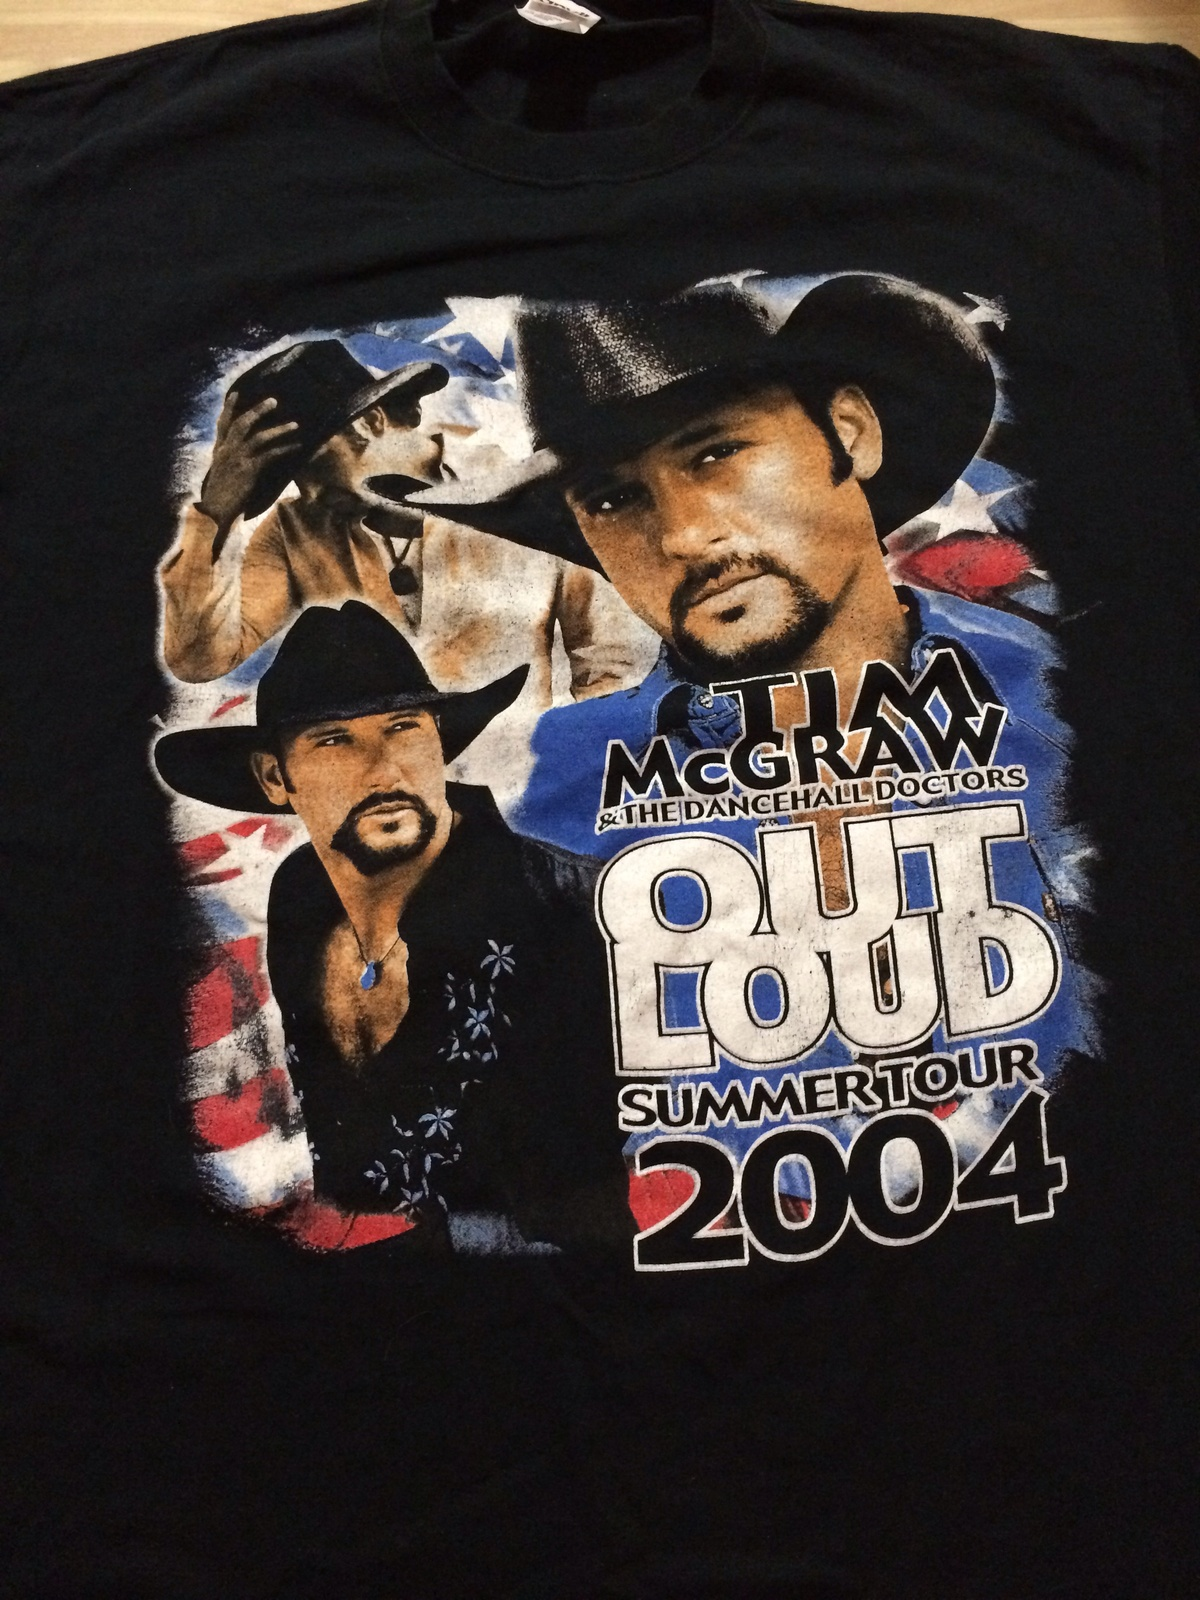 Tim McGraw Vintage 2004 Concert Tour T-Shirt Sz XL  Front & Back!  Great Piece!